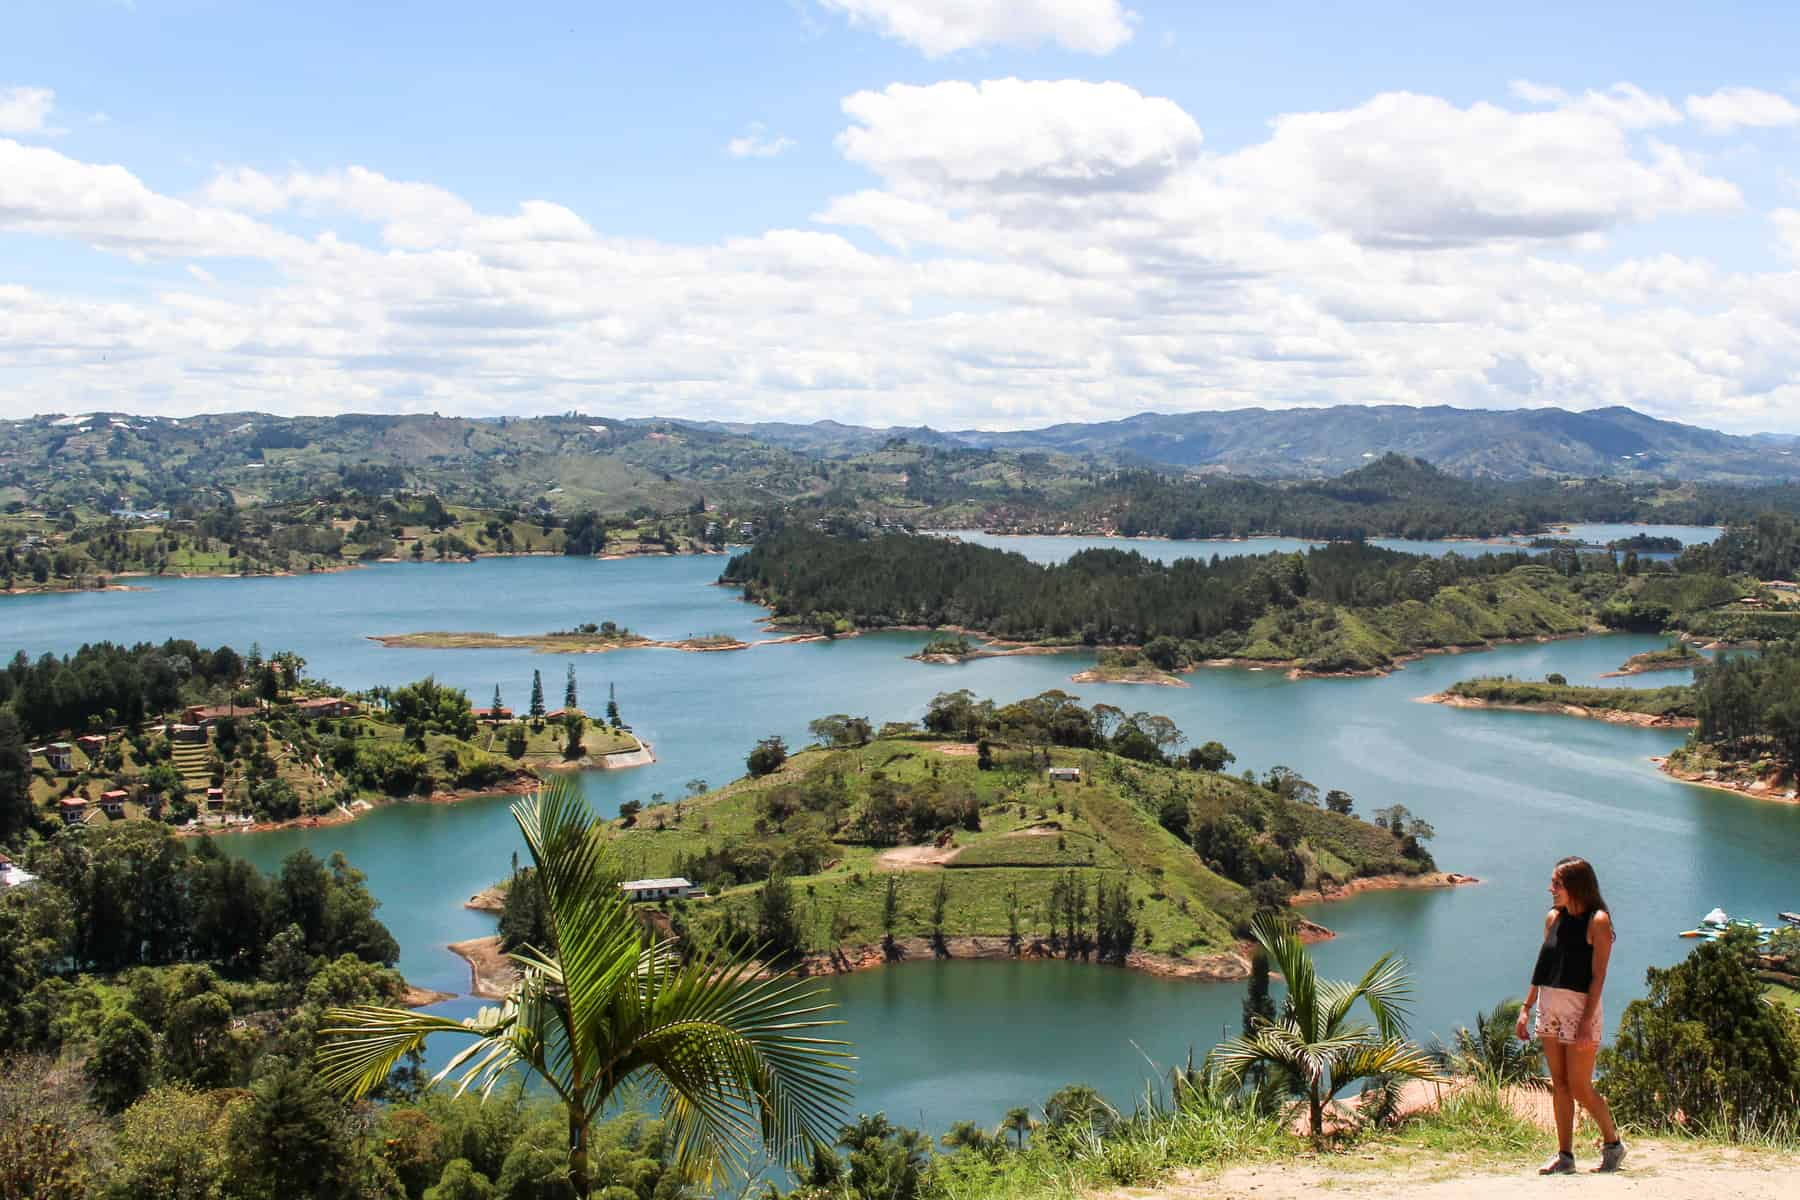 View of Guatape Lake from Hike